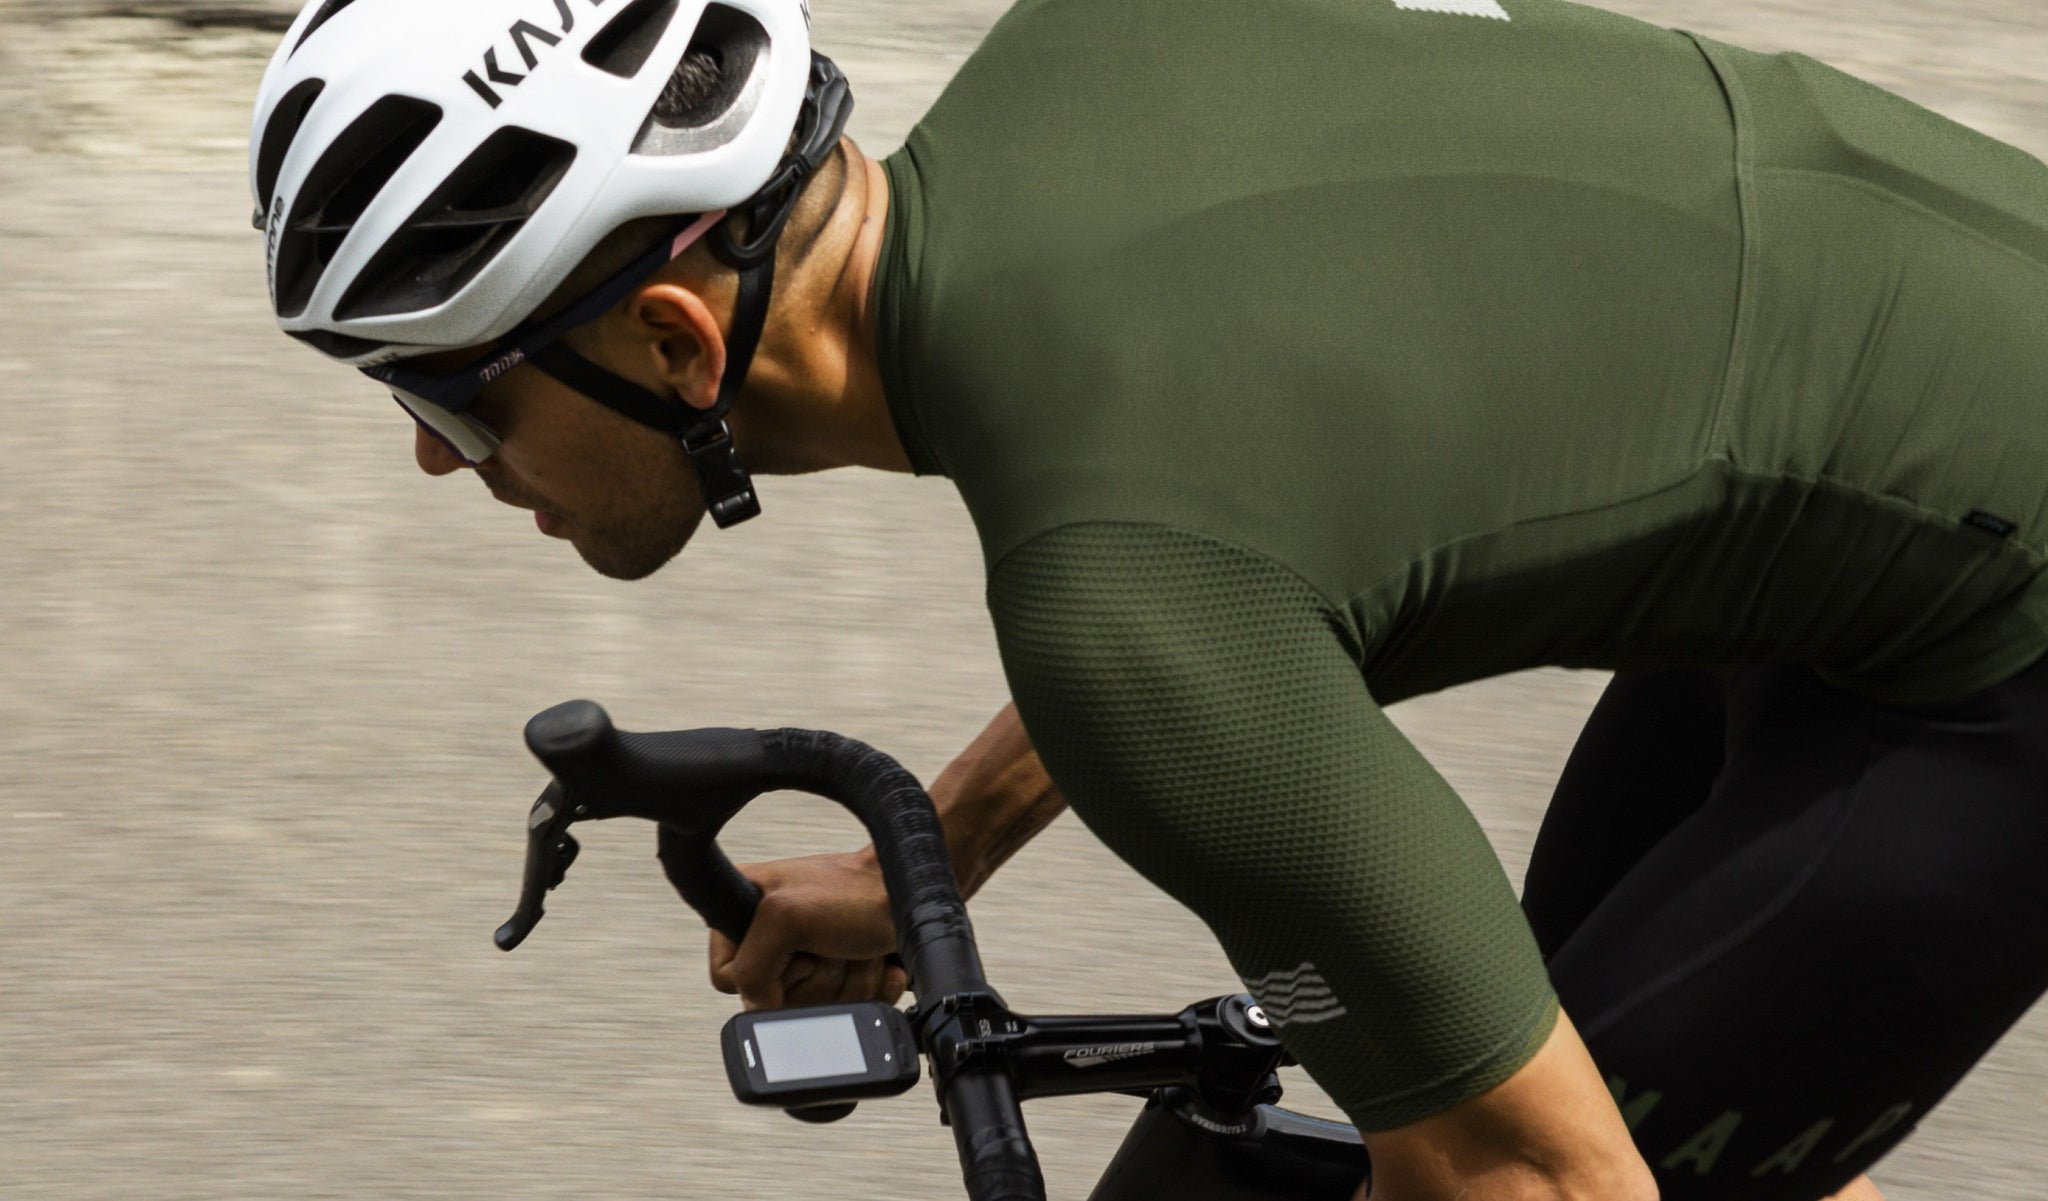 MAAP Echo Pro Base Cycling Jersey in Military Green for riding in warm weather conditions.